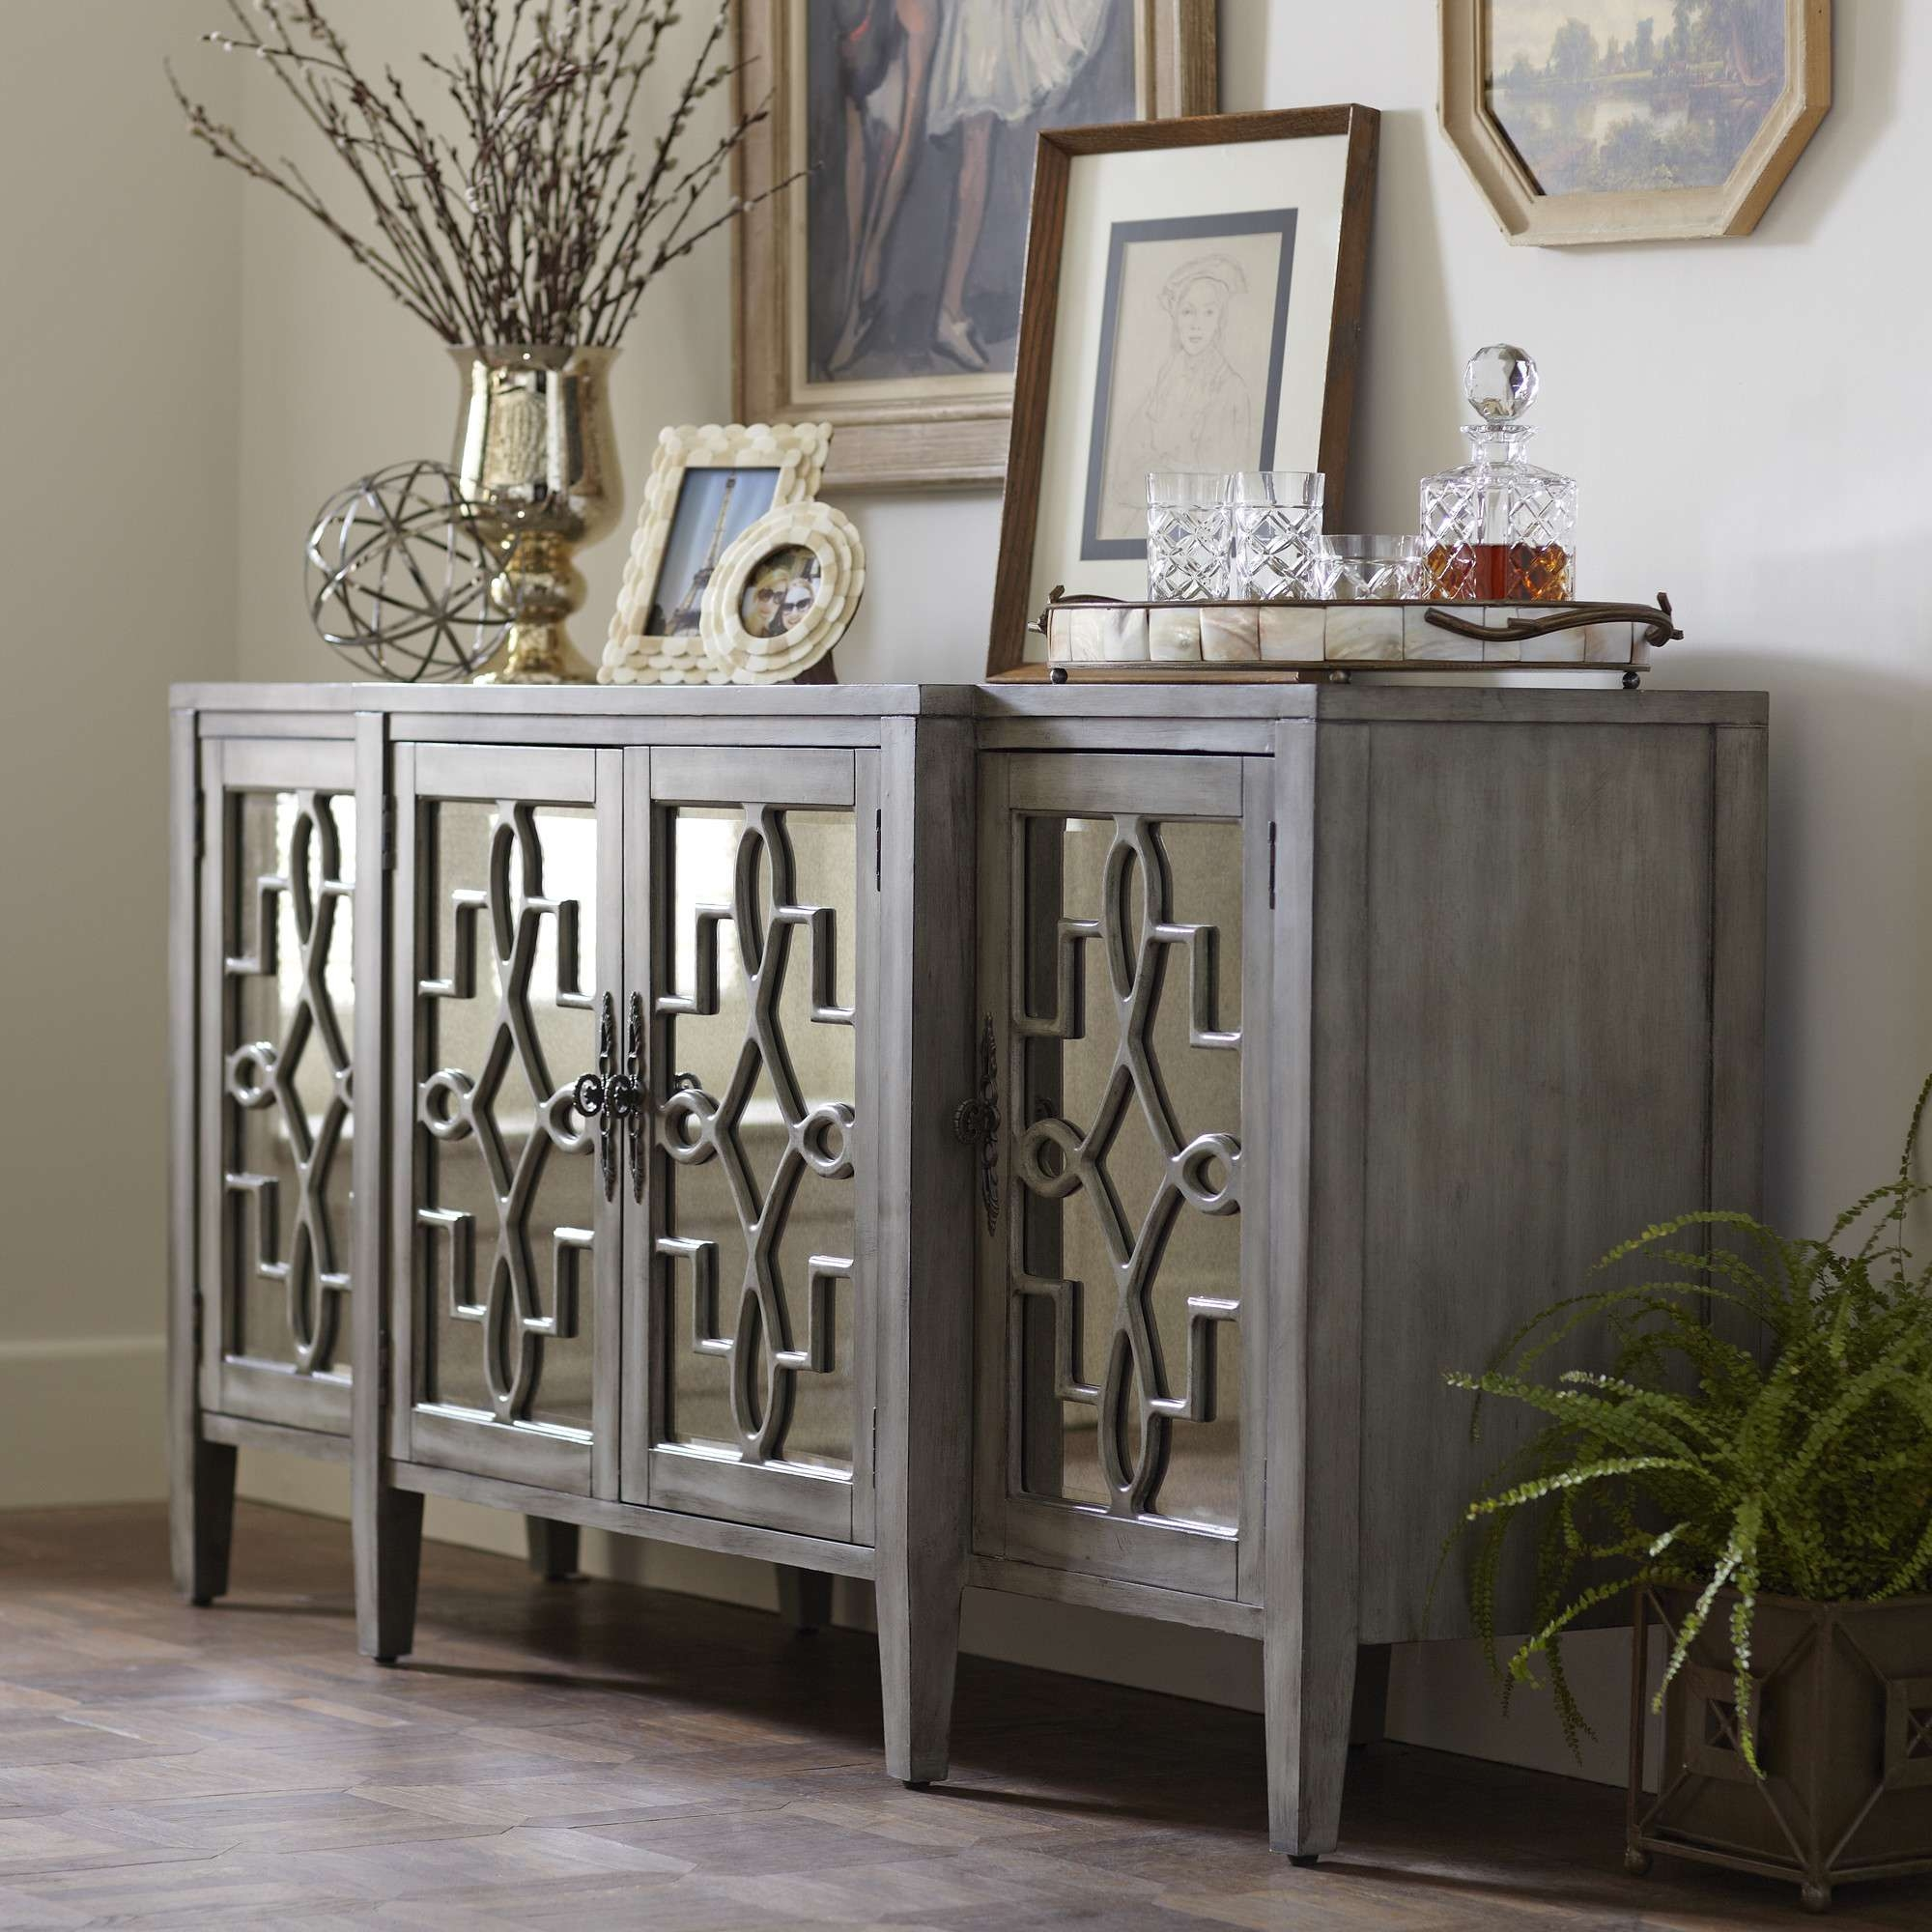 Mirrored Buffet Cabinet Home Design Elegant Sideboards Sideboard Intended For Mirrored Buffet Sideboards (View 12 of 20)